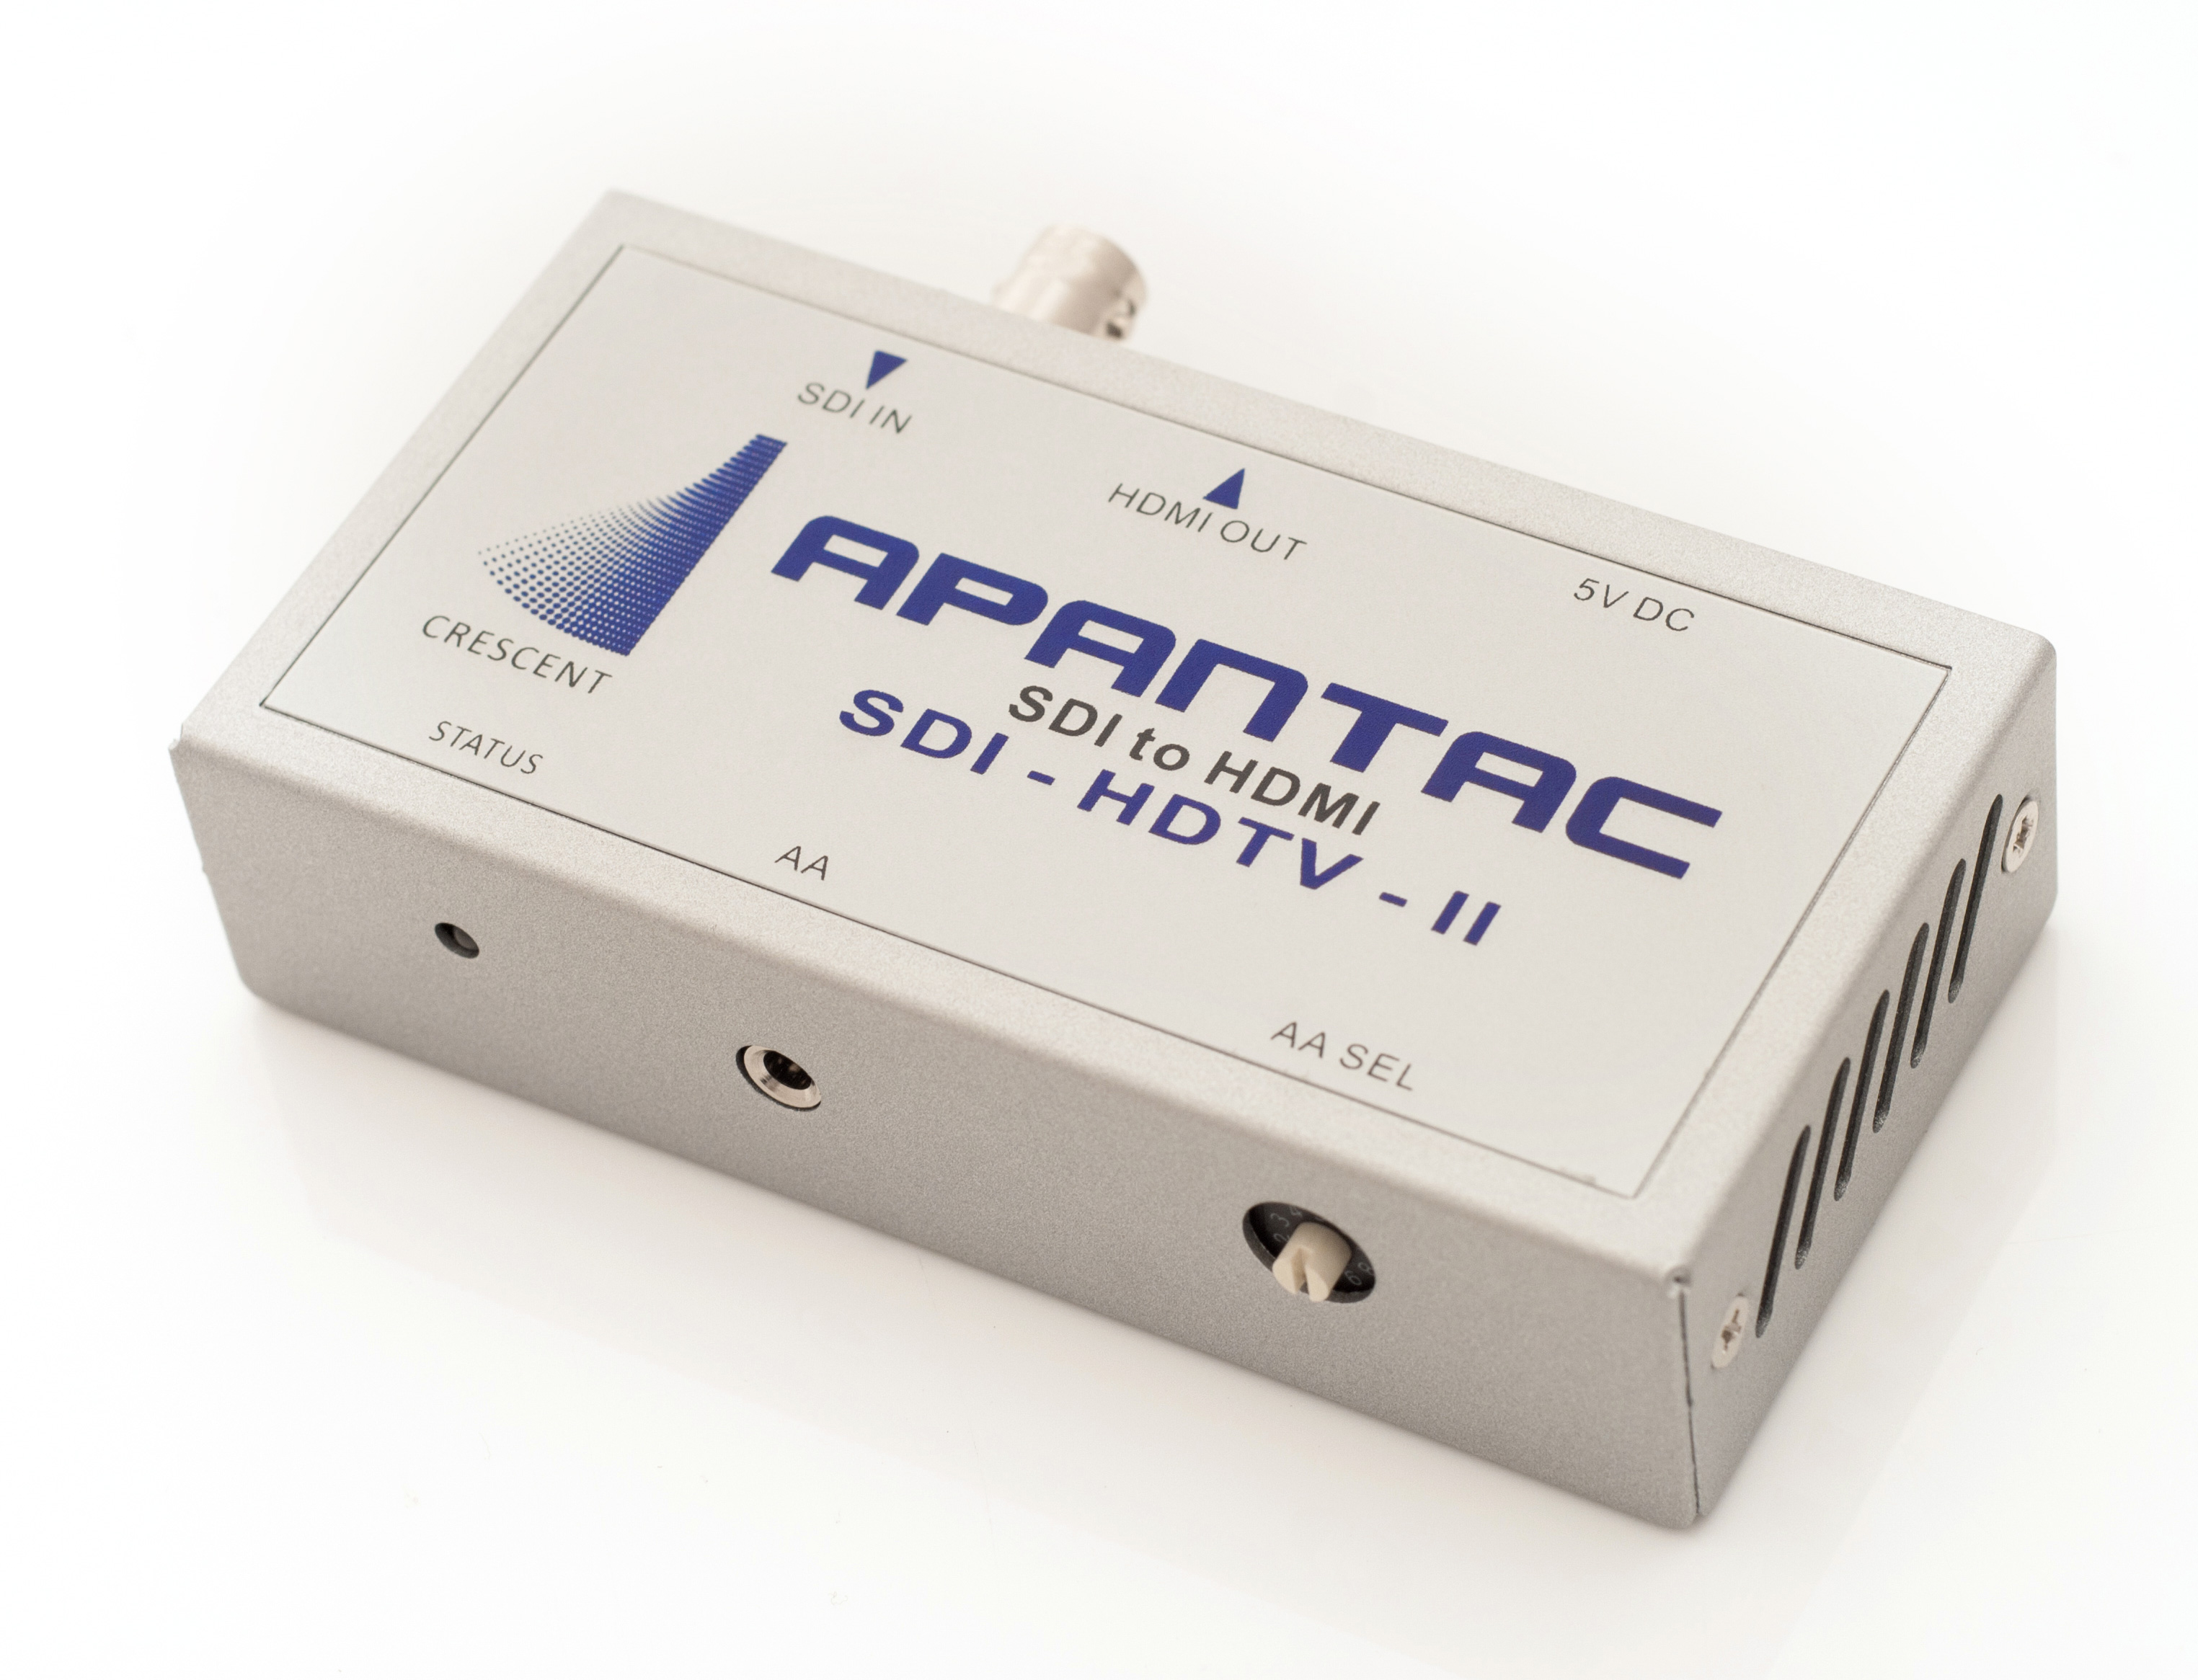 Apantac   | Simple SDI to HDMI/DVI Converter